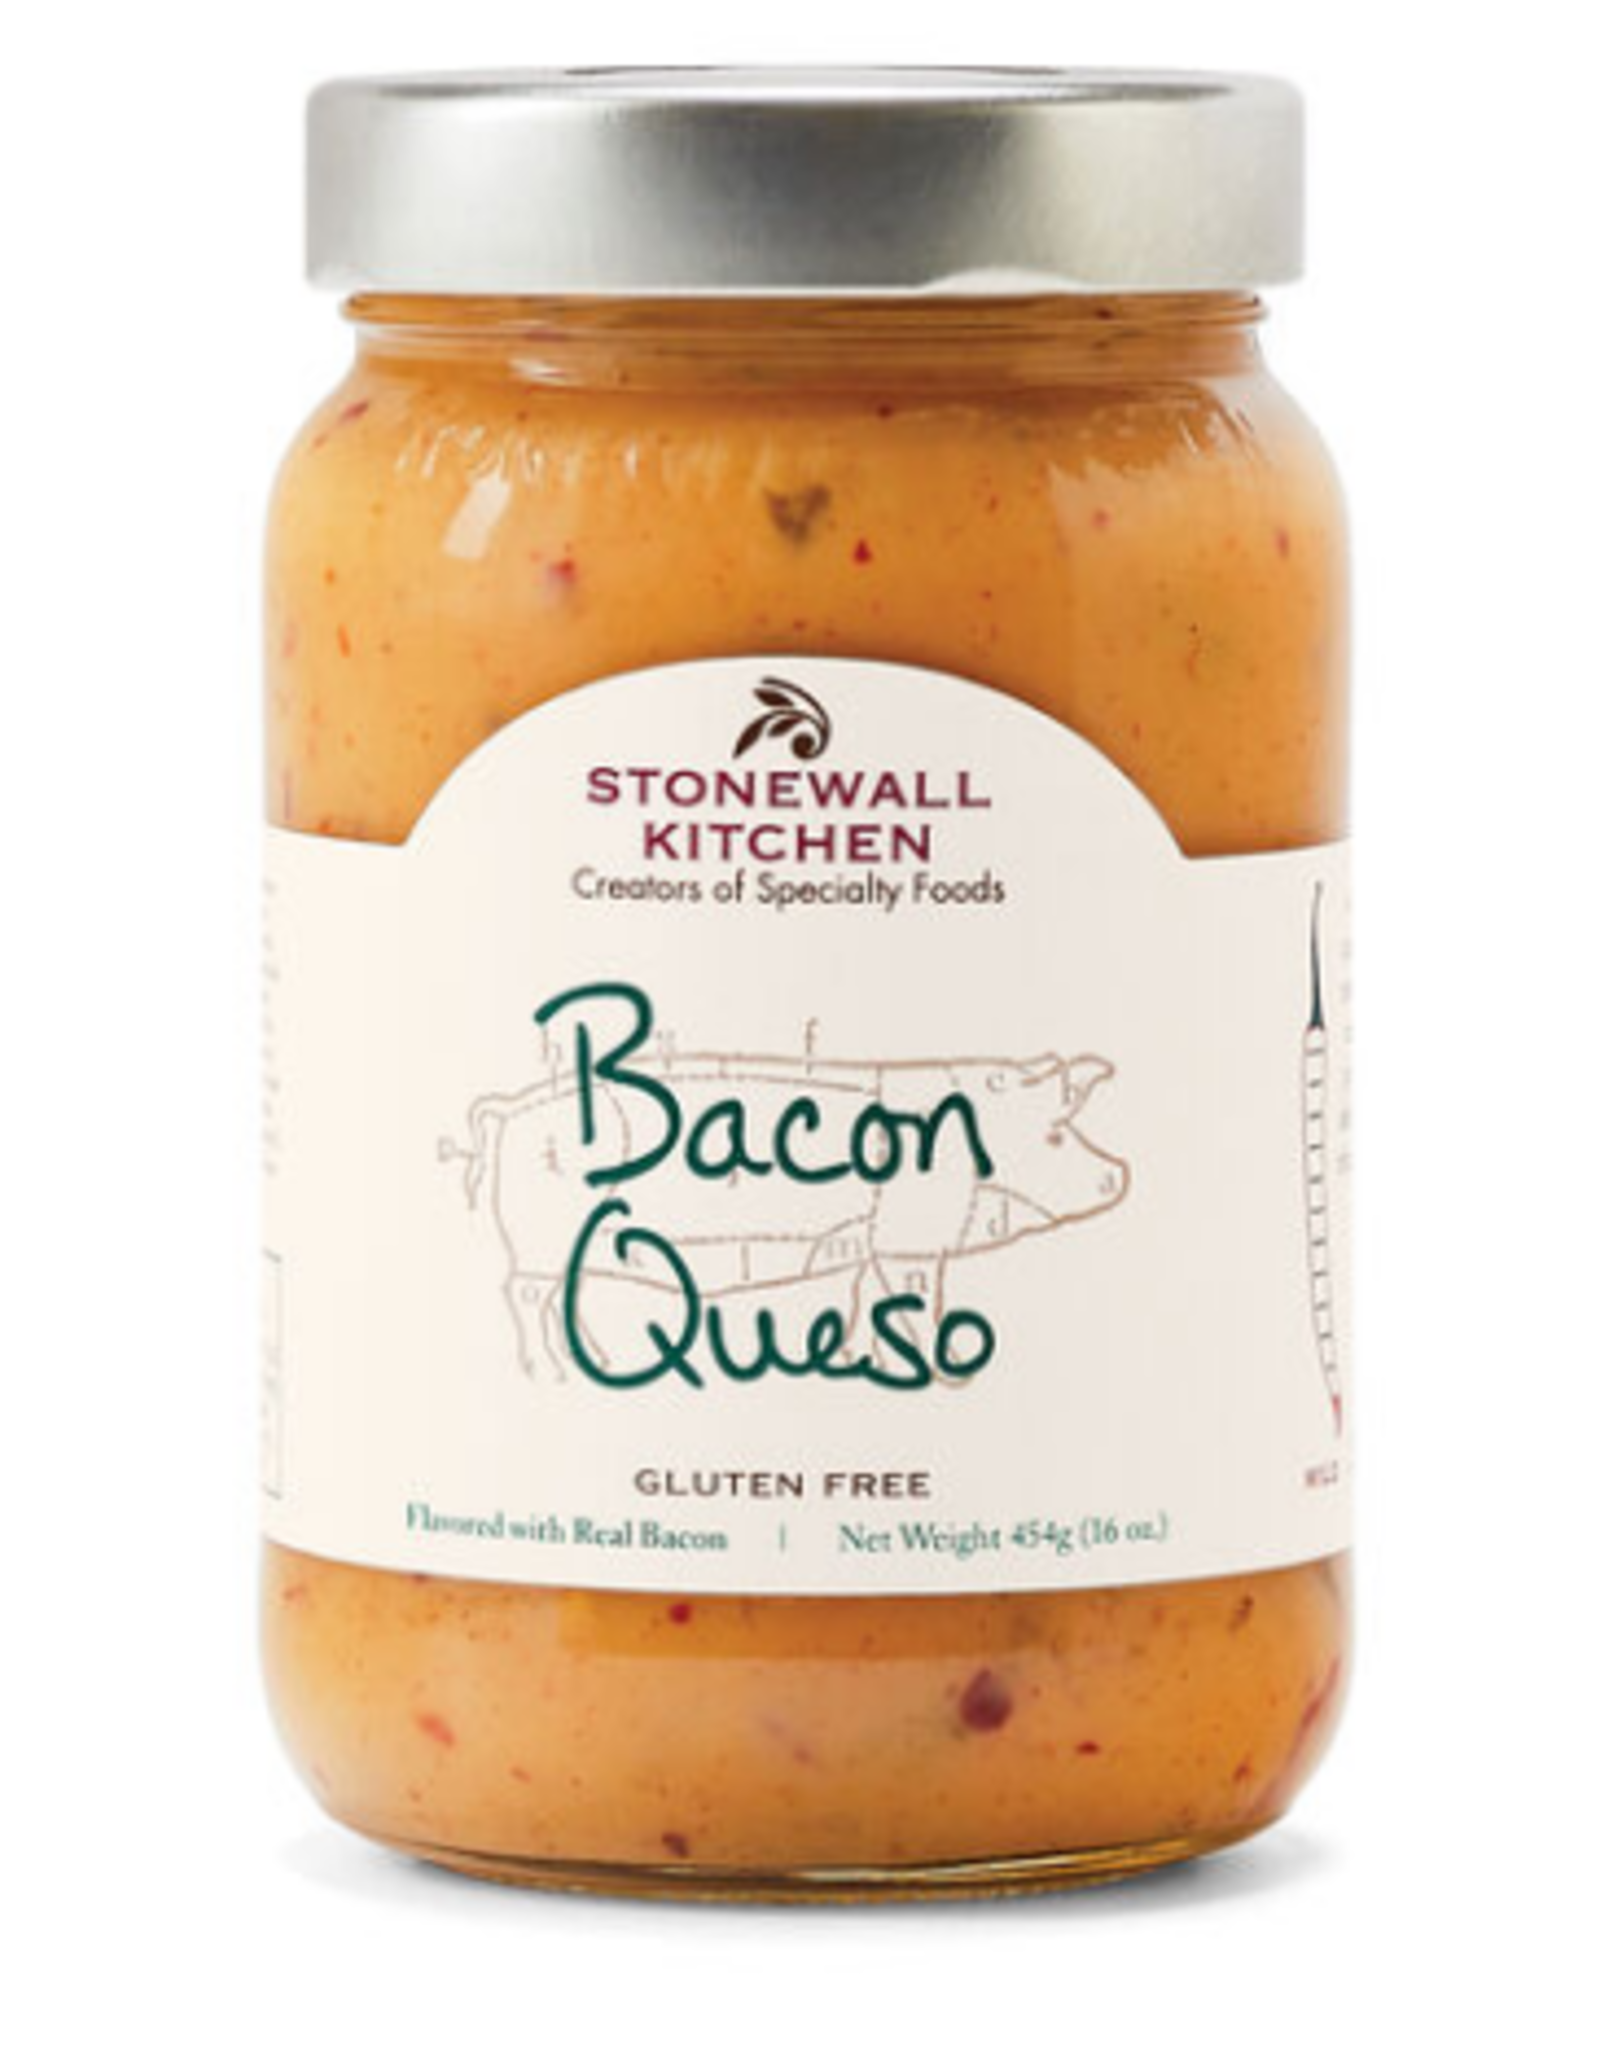 Stonewall Kitchen Bacon Queso